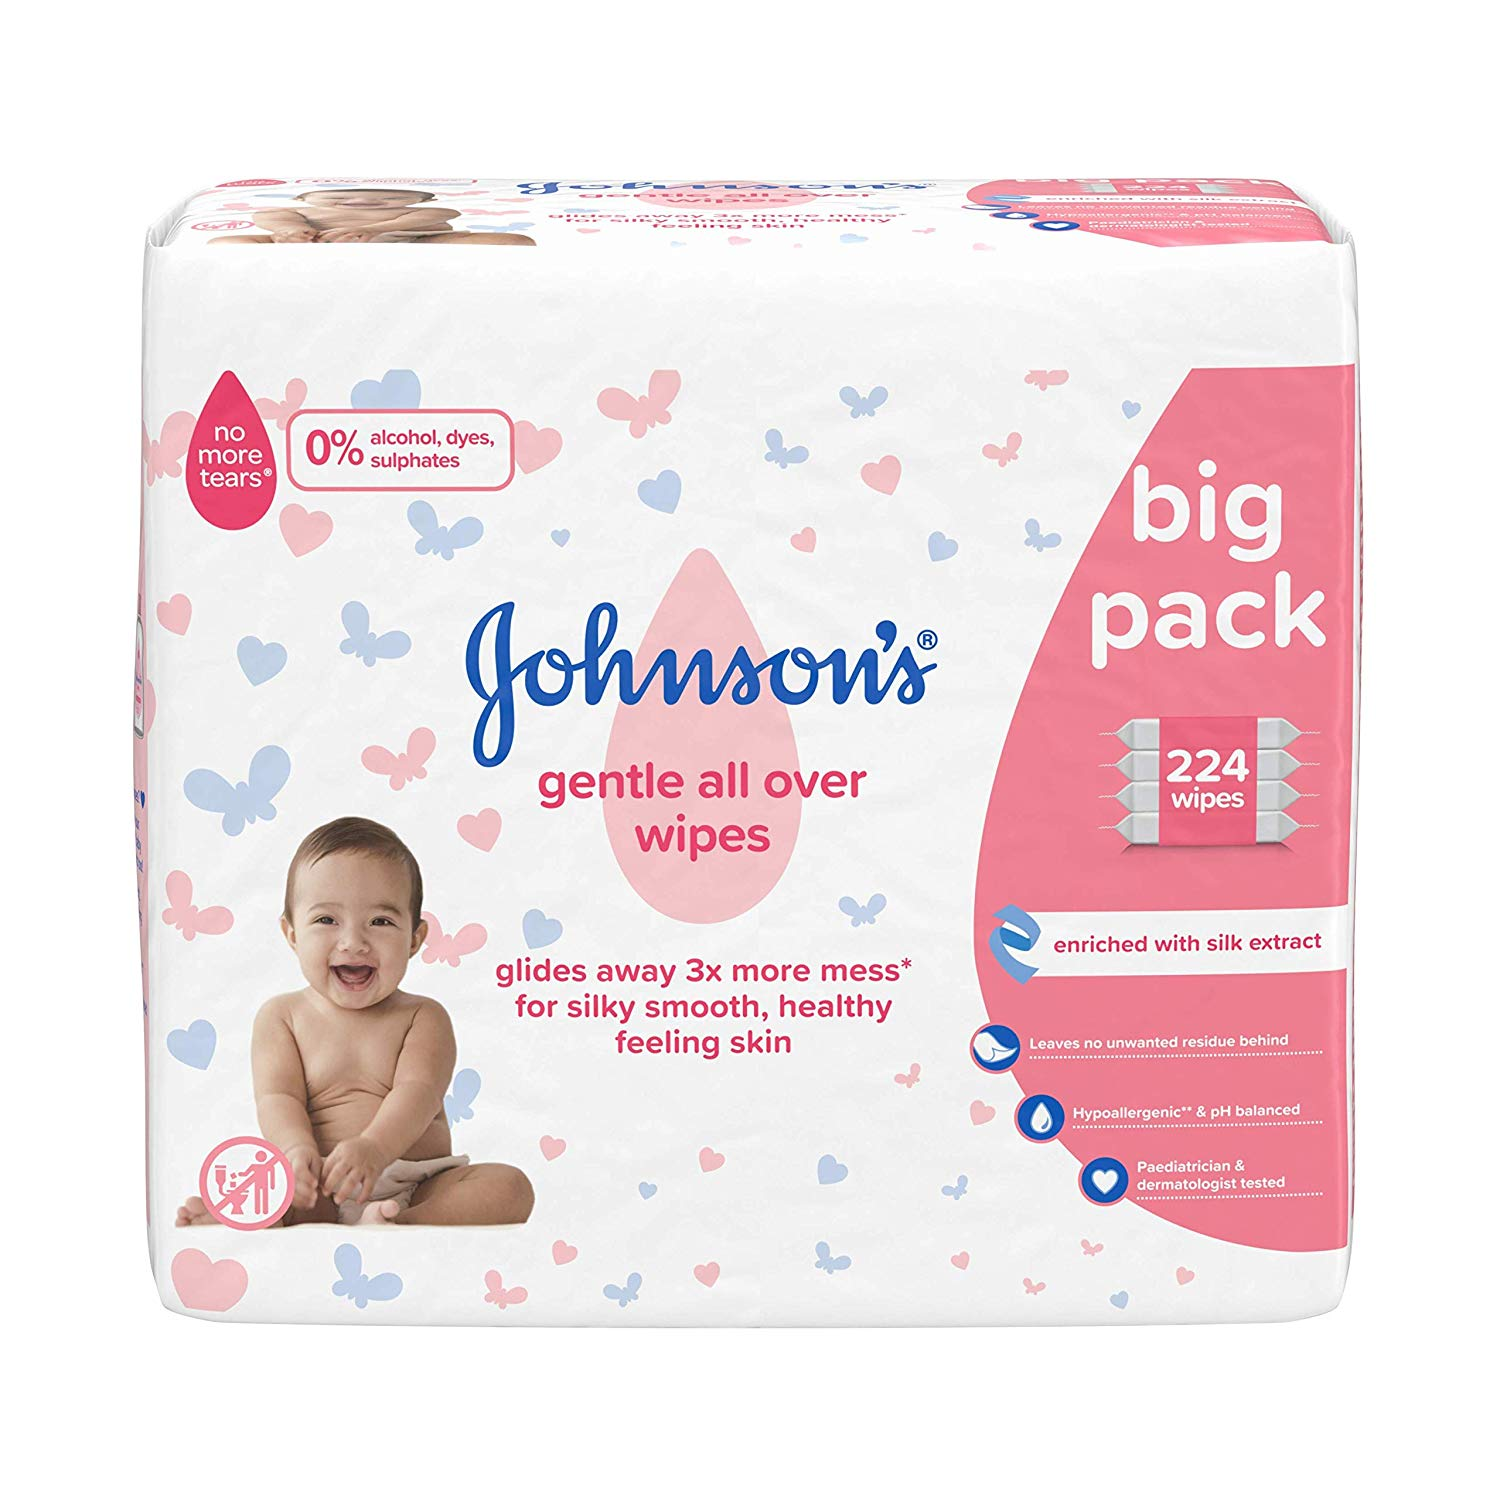 JOHNSON'S Gentle All Over Wipes – 224 ct (56×4) (add on item)